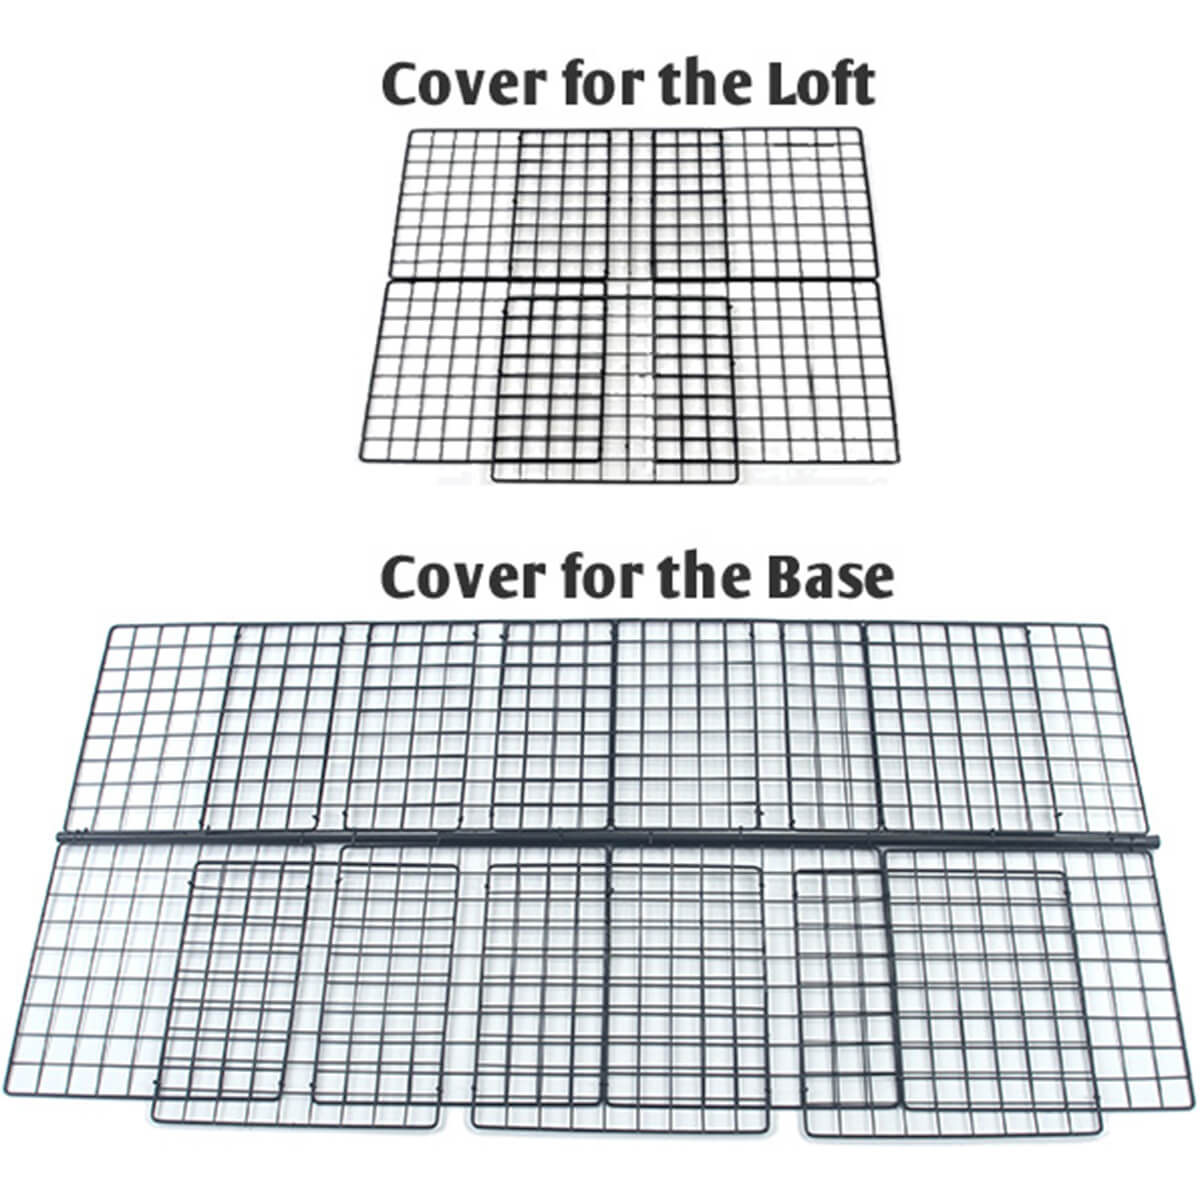 Deluxe Flip-Fold Covers